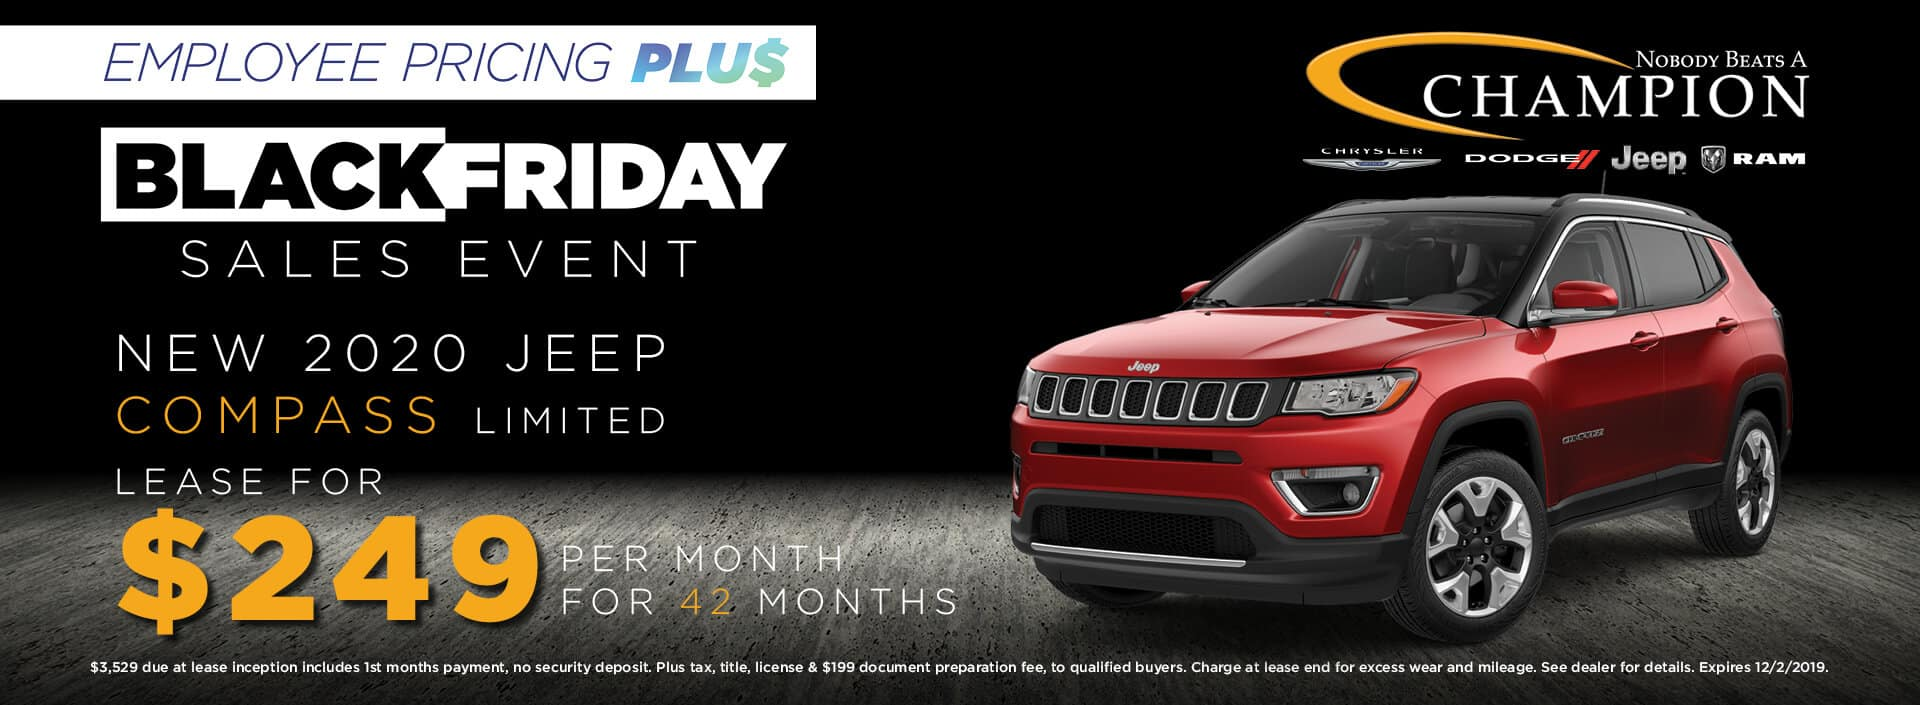 Lease a 2020 Jeep Compass Limited for $249/mo. for 42 mos.